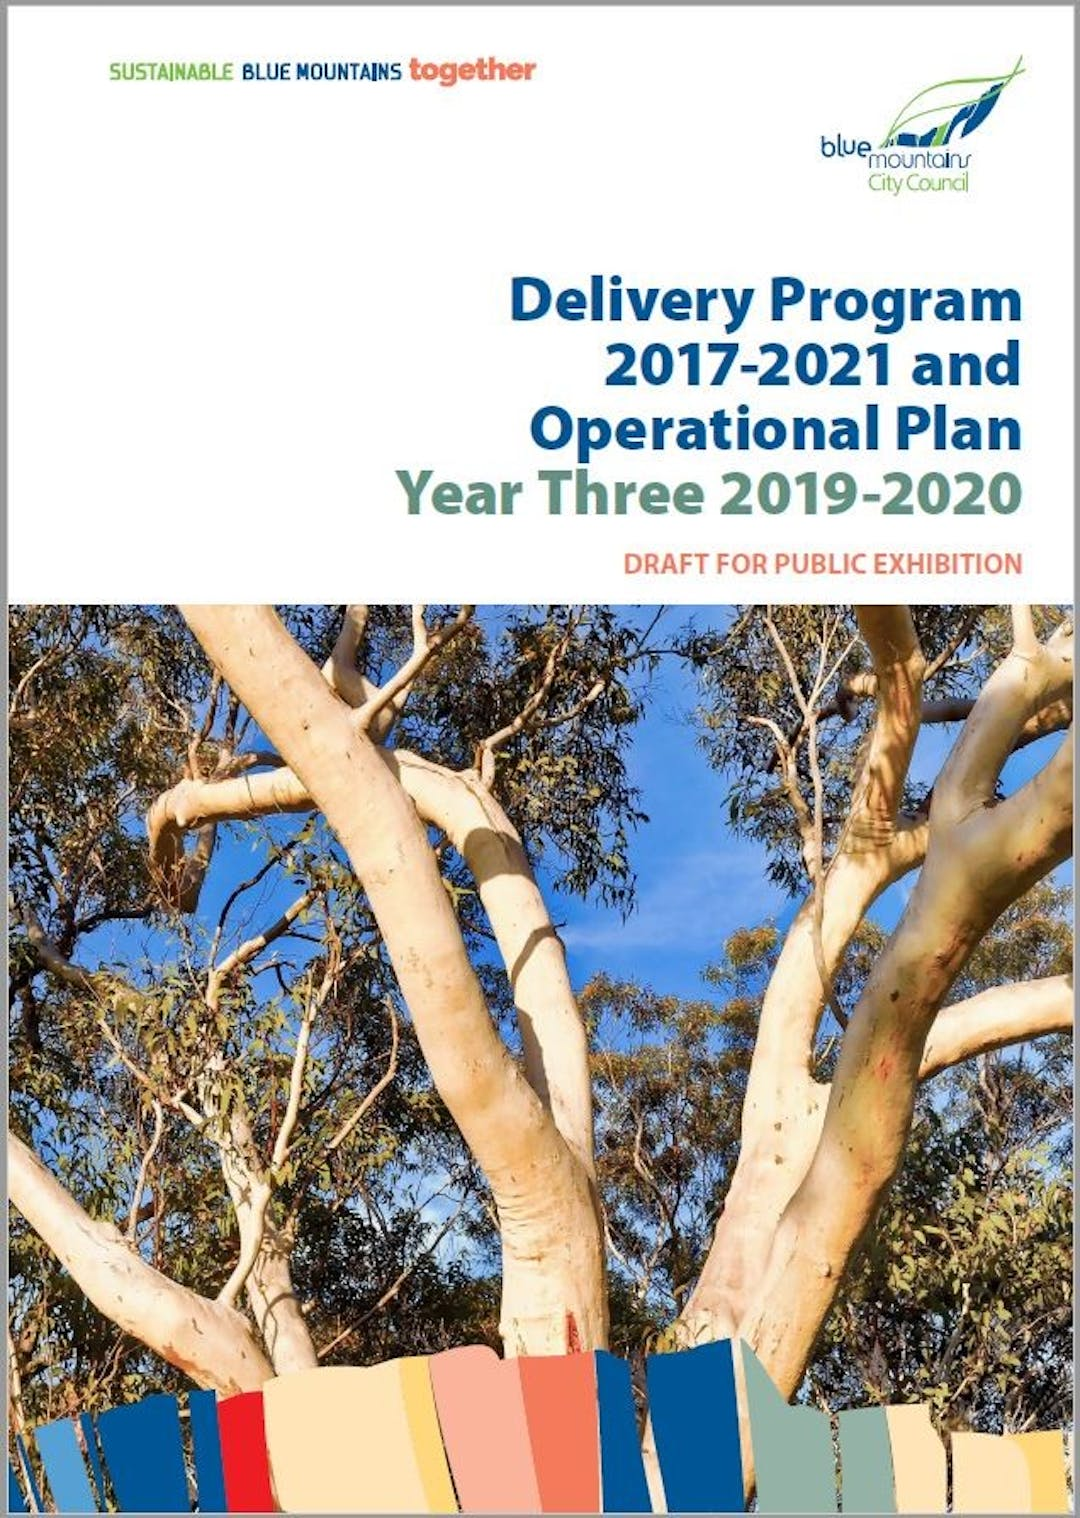 Cover image for Draft Delivery Program 2017-2021 and Operational Plan 2019-2020